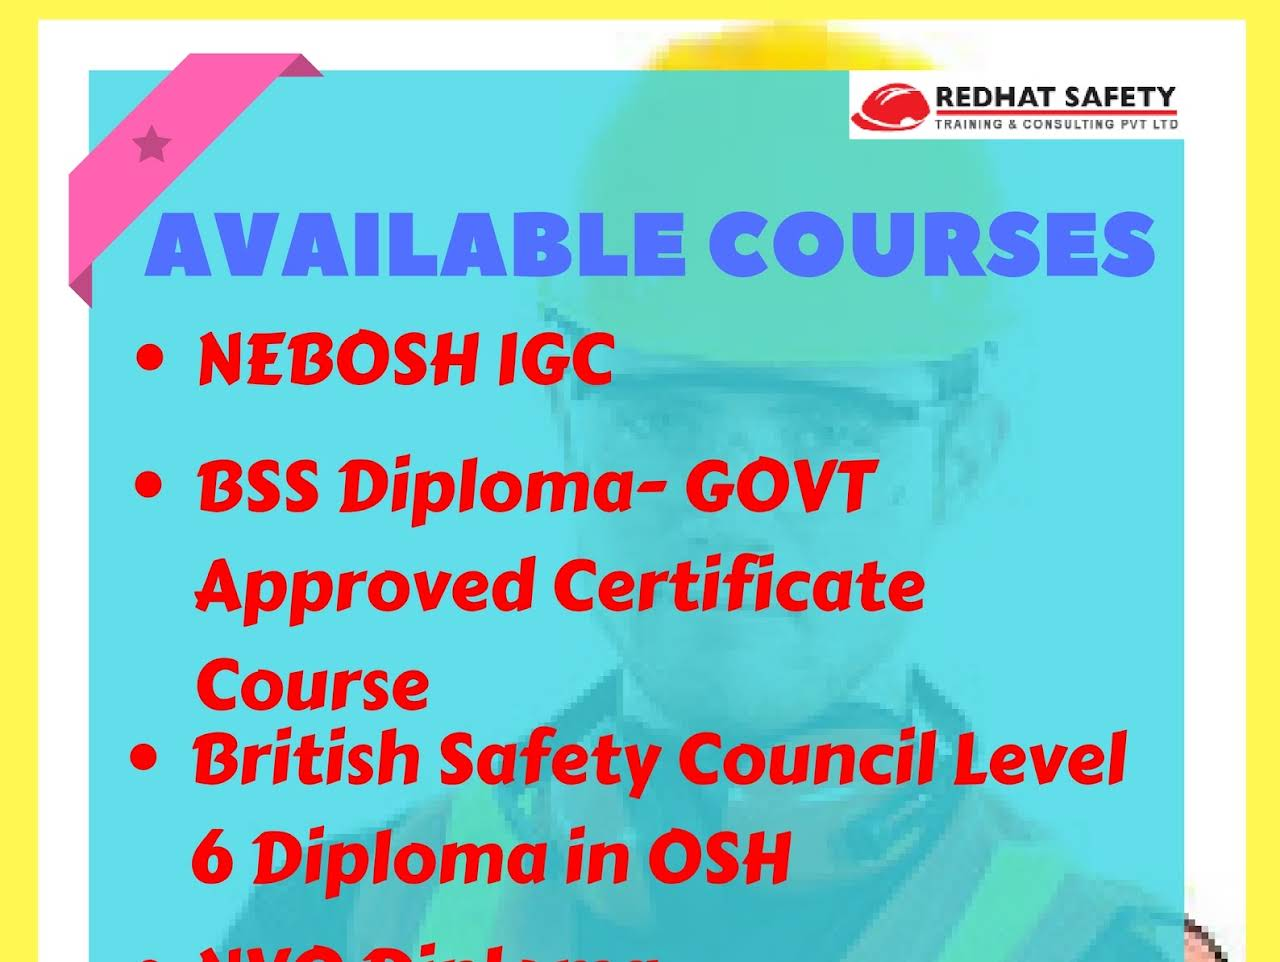 SPECIAL OFFER FOR ALL COURSES